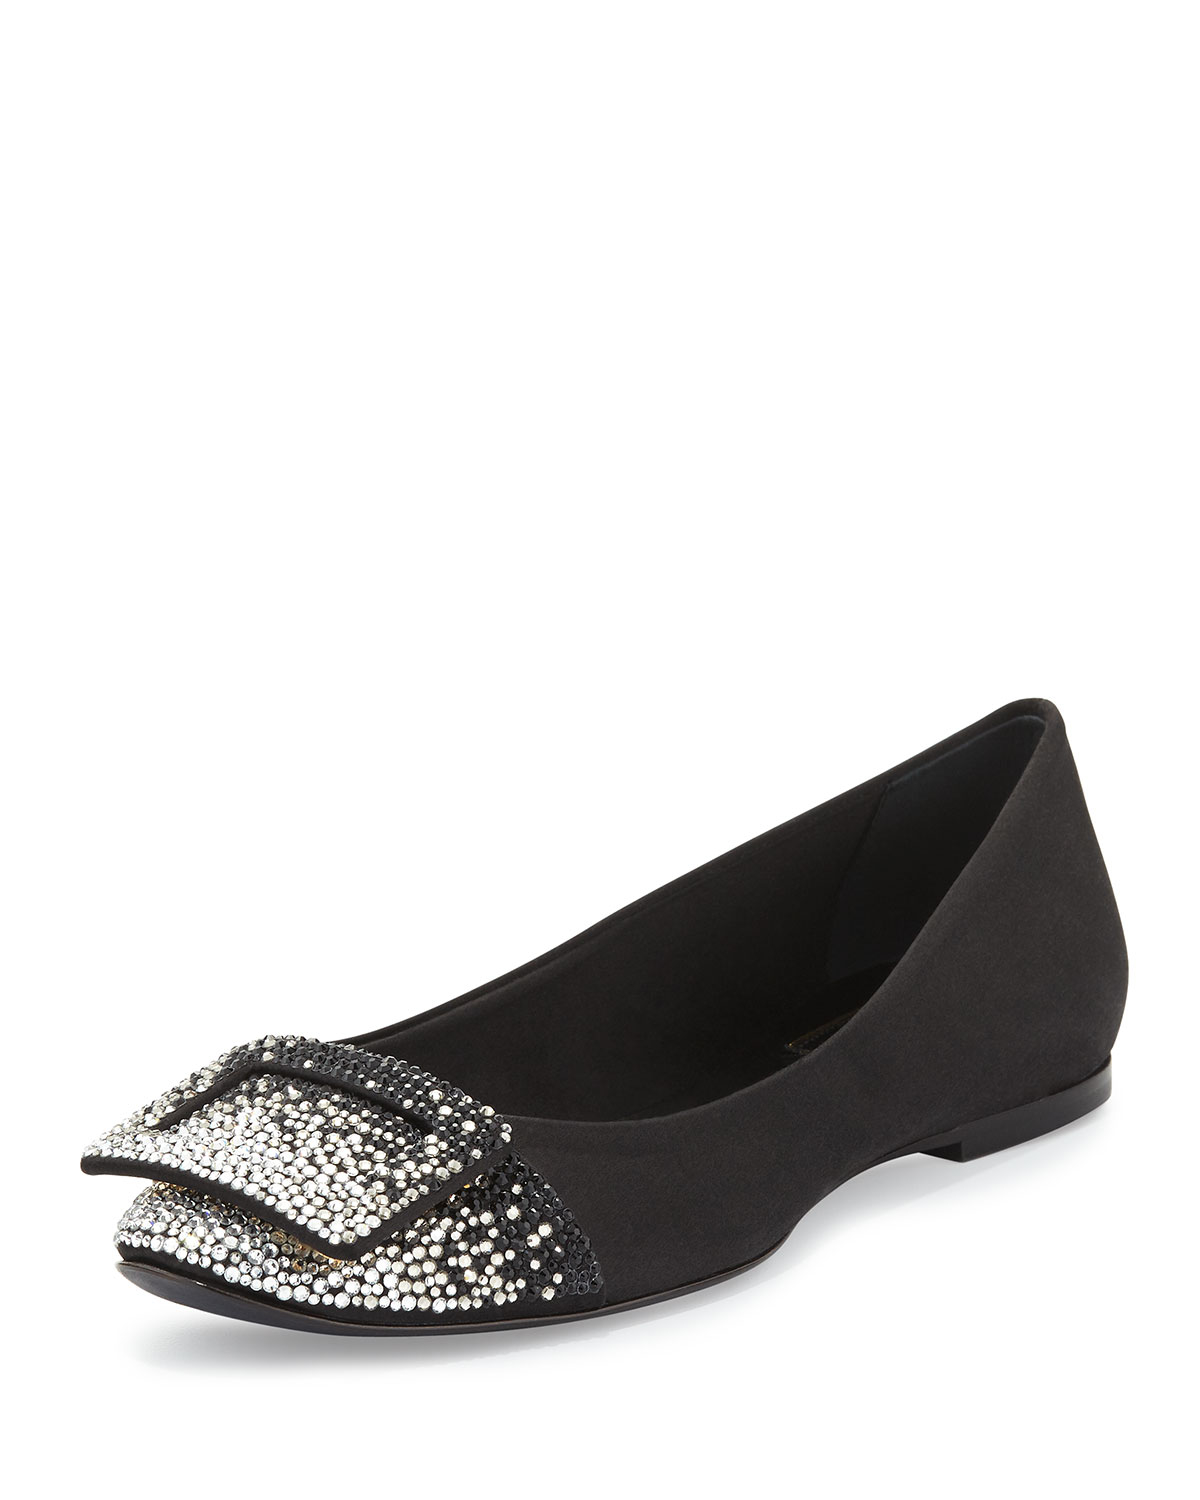 Roger Vivier Love Strass Flats free shipping the cheapest 4WEXM